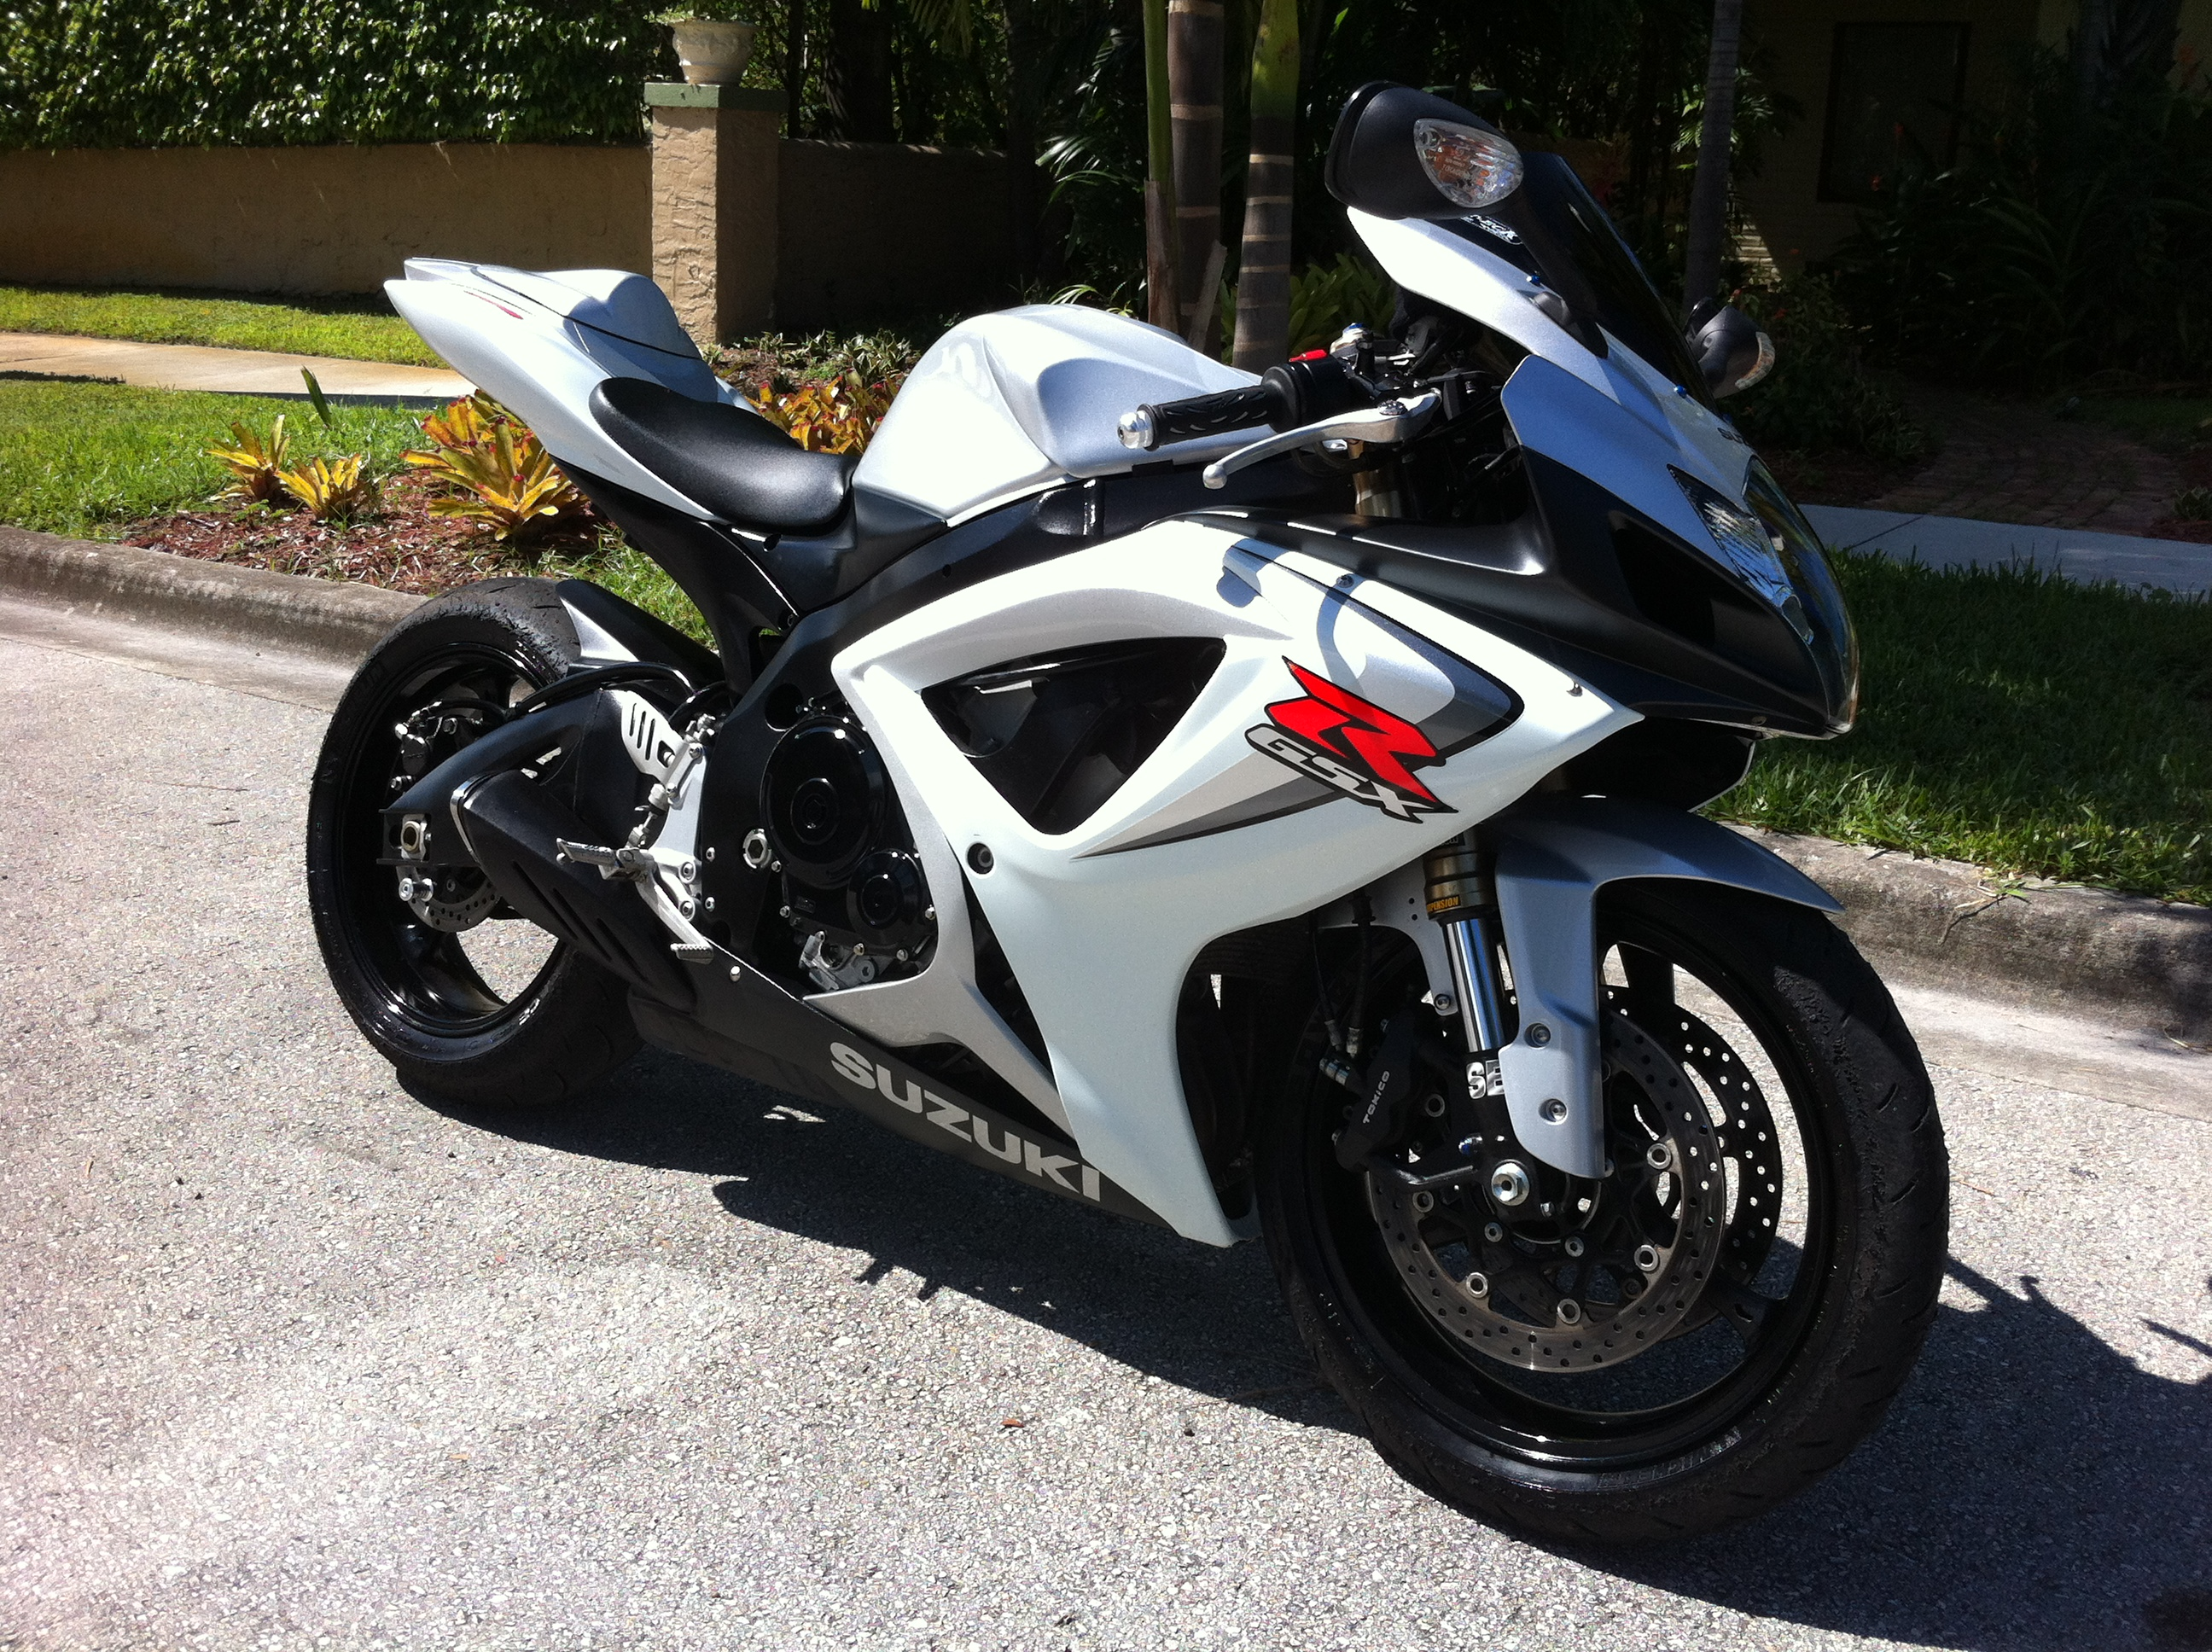 sell motorcycle miami-dade